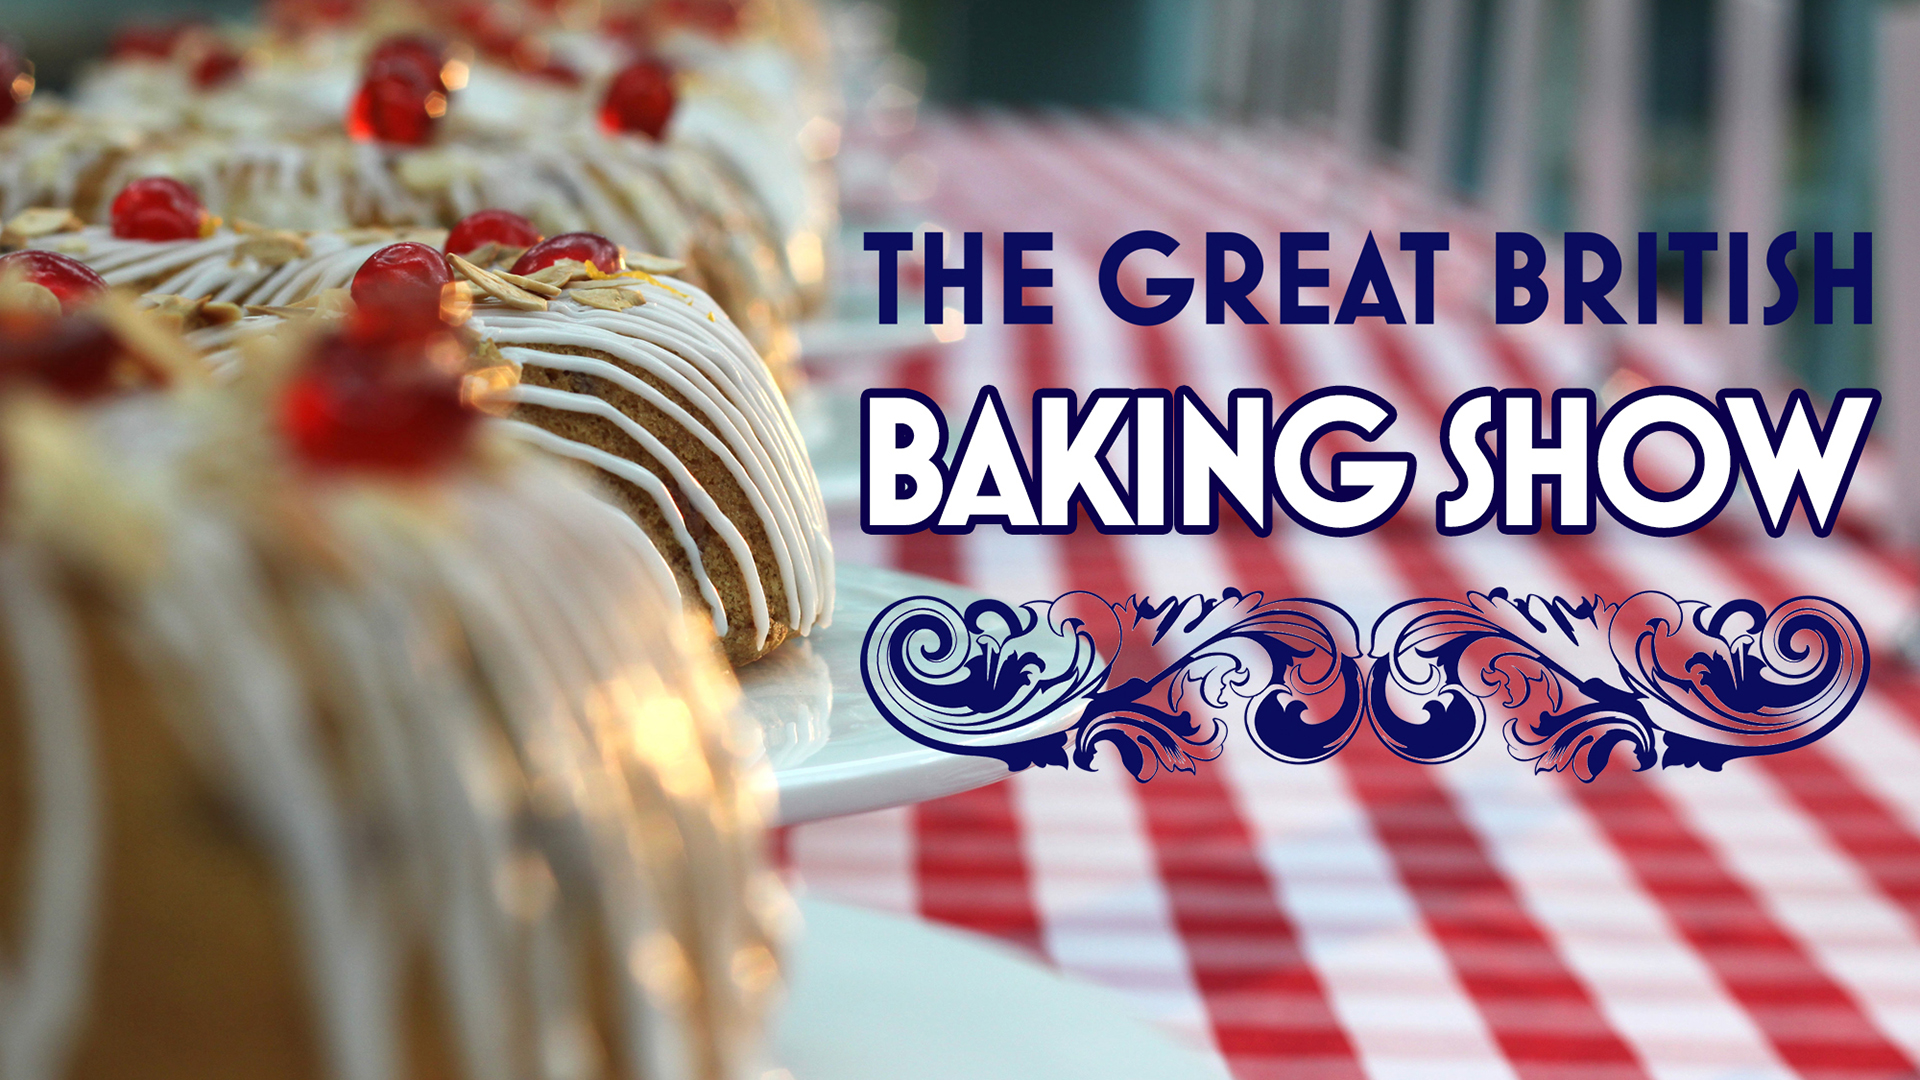 The Great British Baking Show: Friday Jul 22nd at 8pm Alternative Ingredients